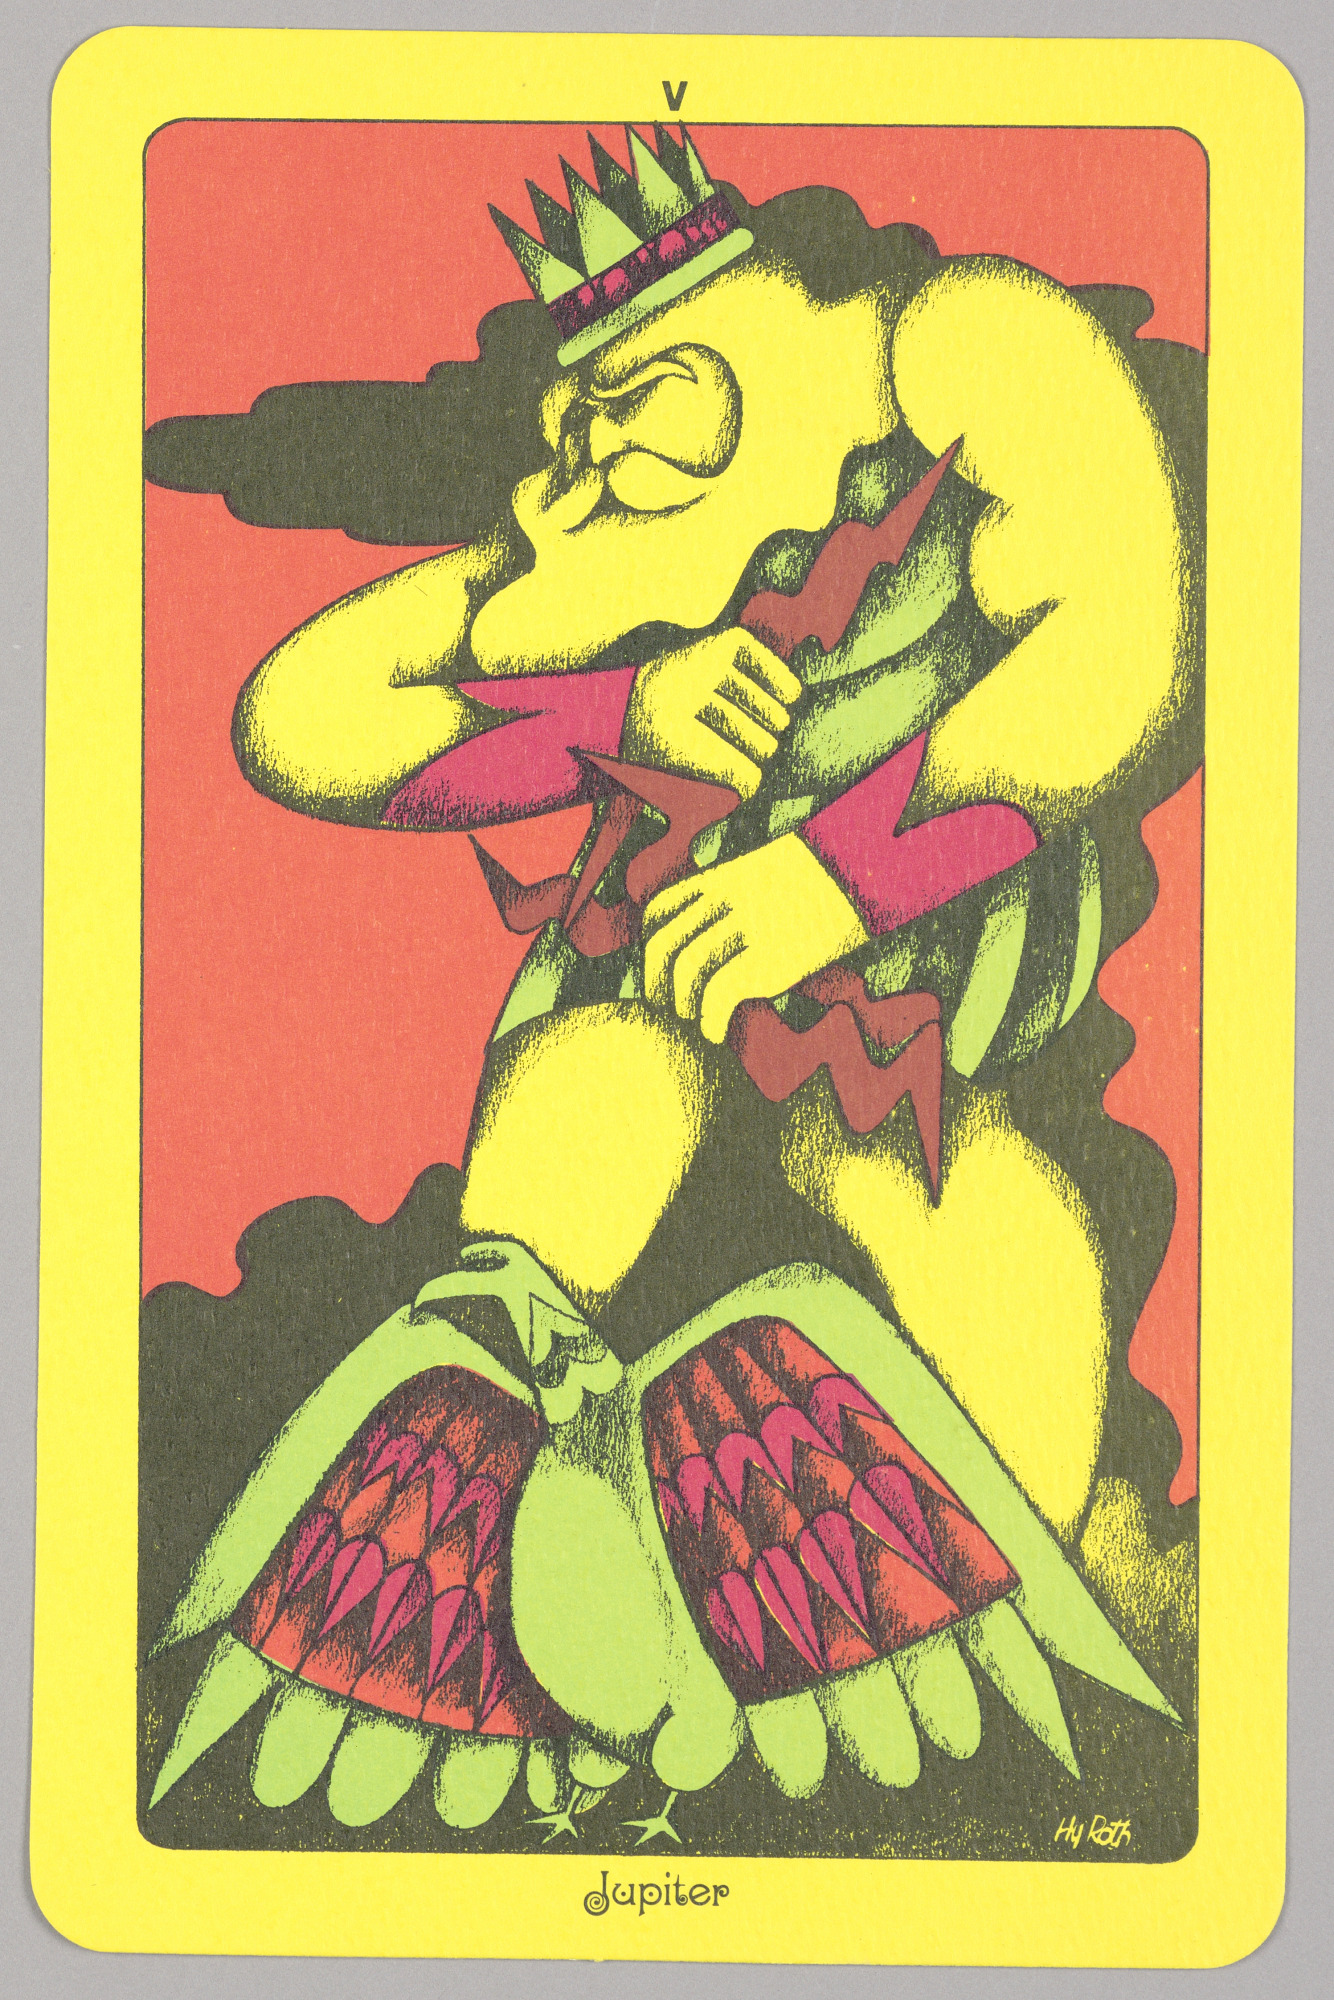 V, Jupiter from Linweave Tarot Deck